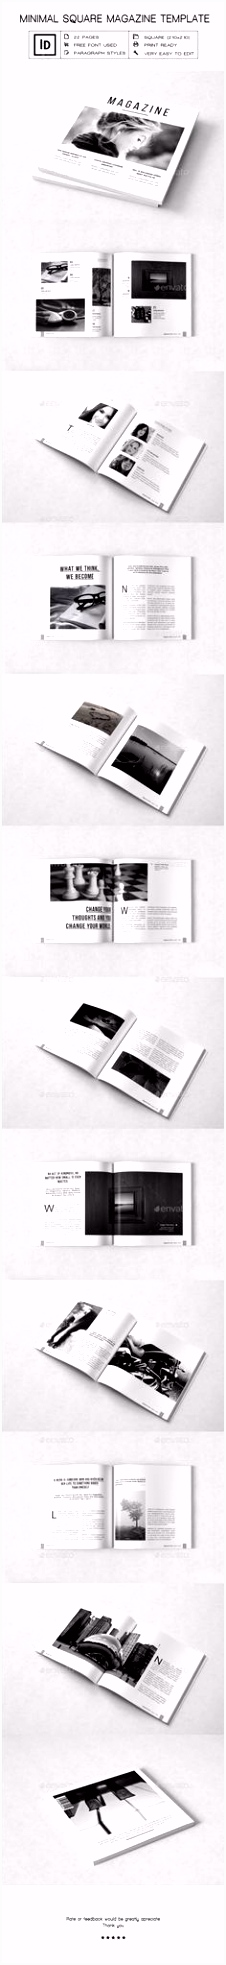 2569 Best Magazine Template images